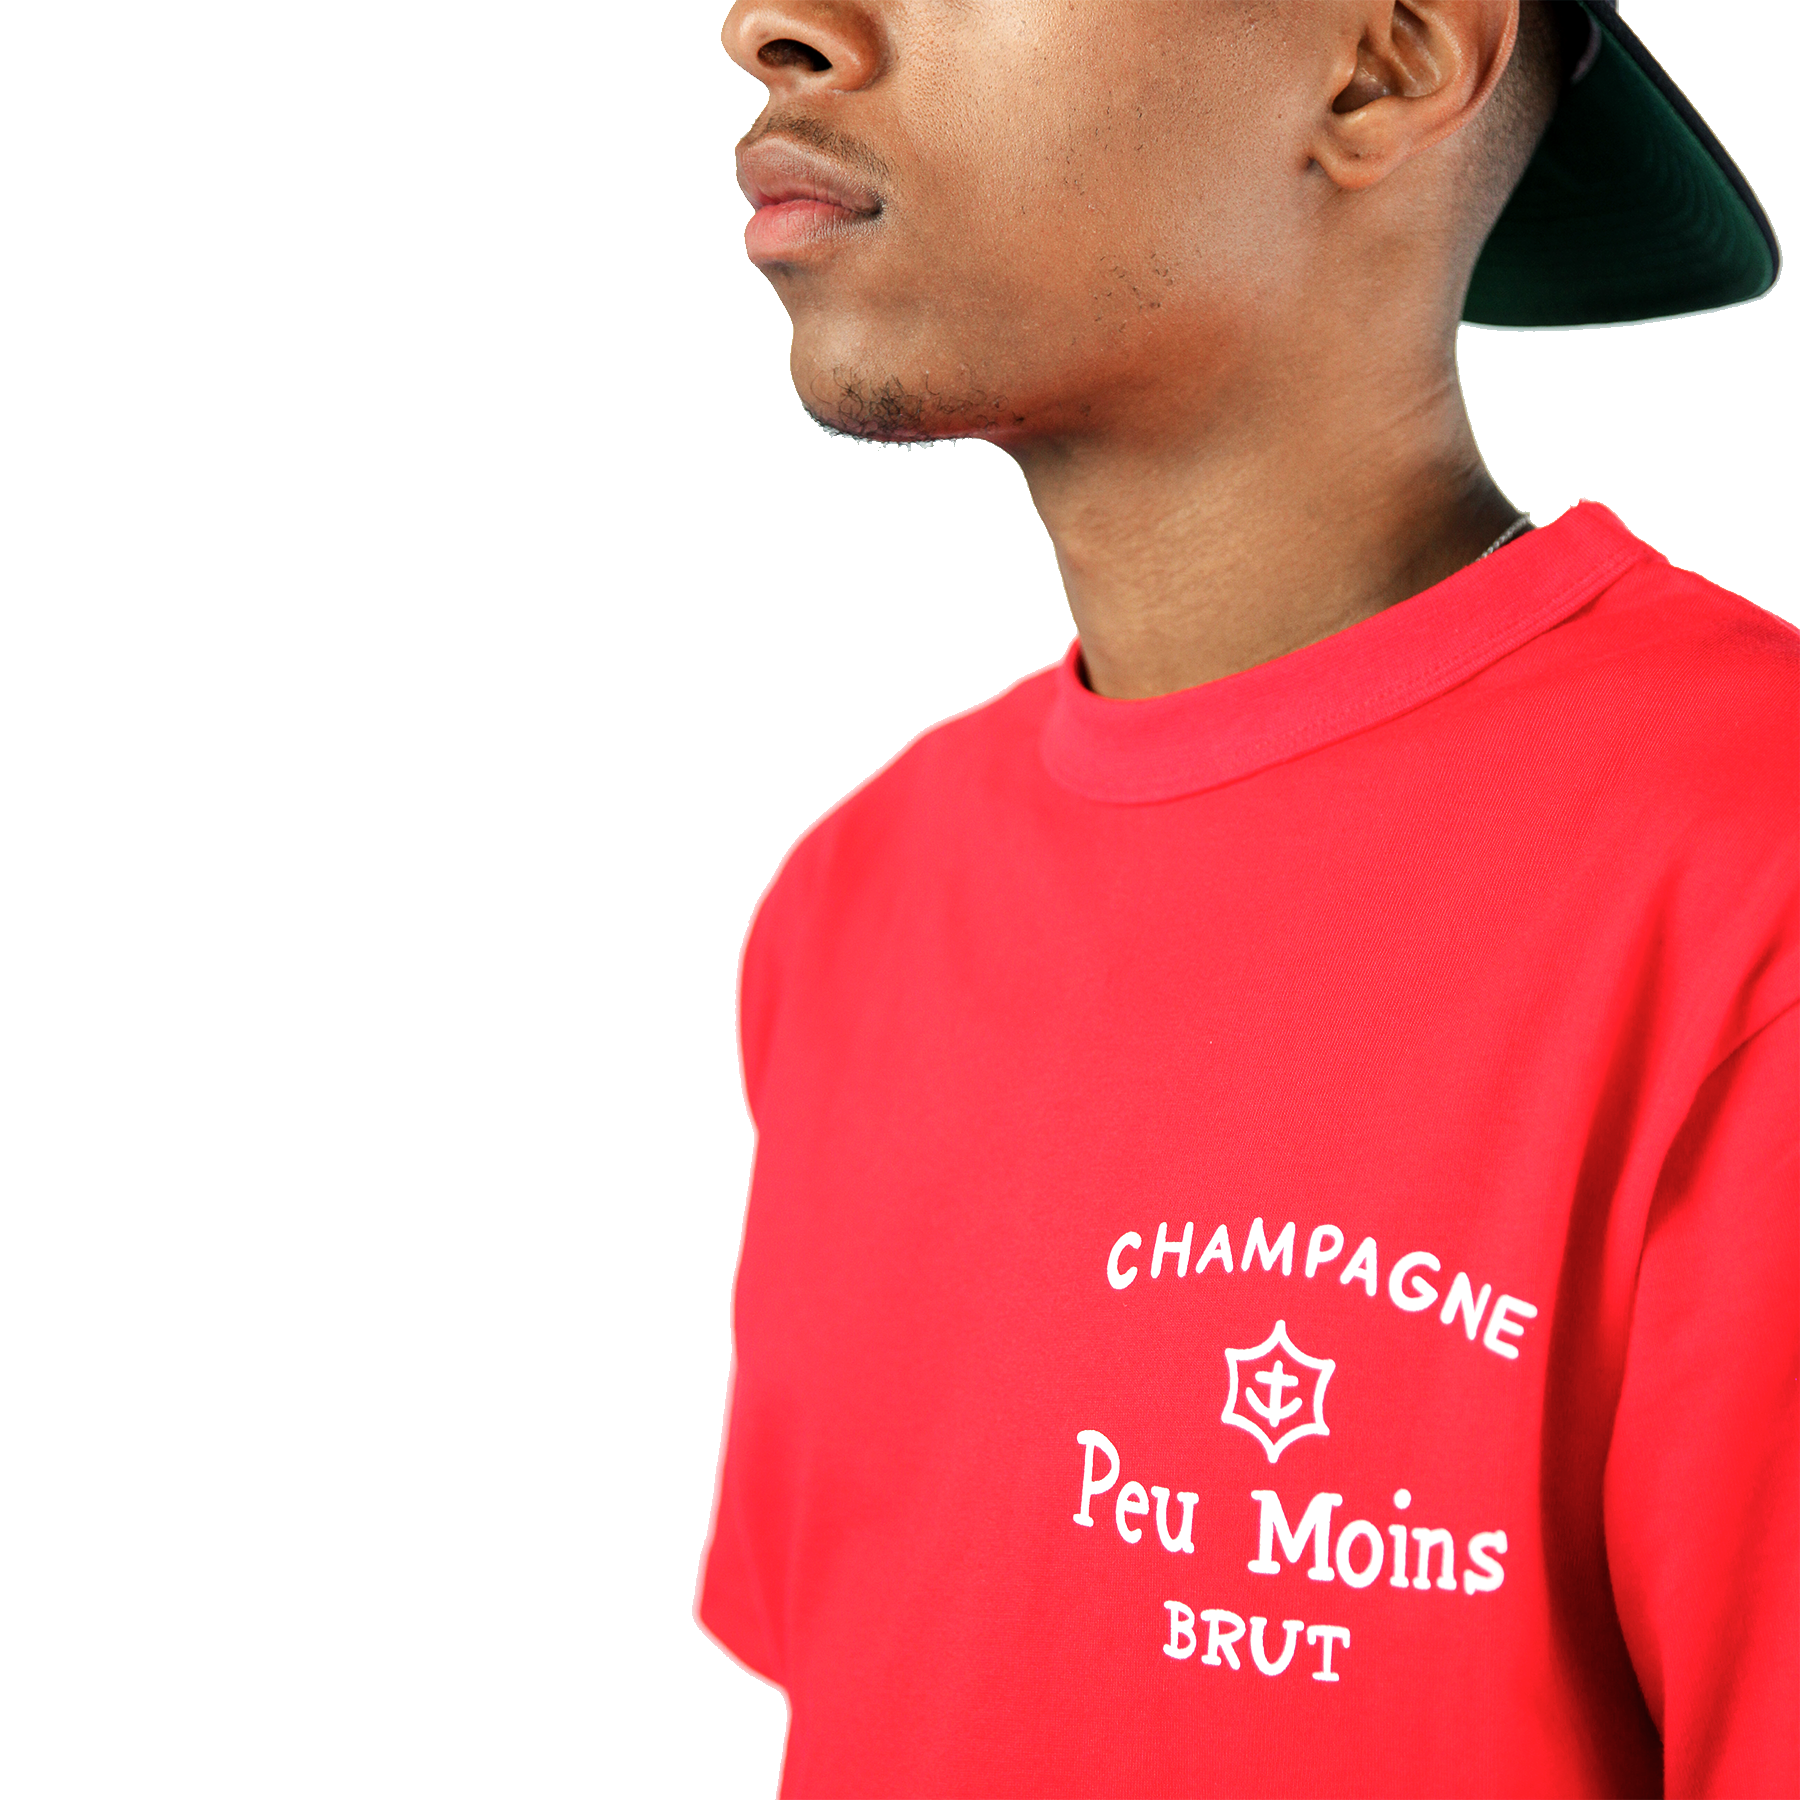 Peu Moins Champagne Tee